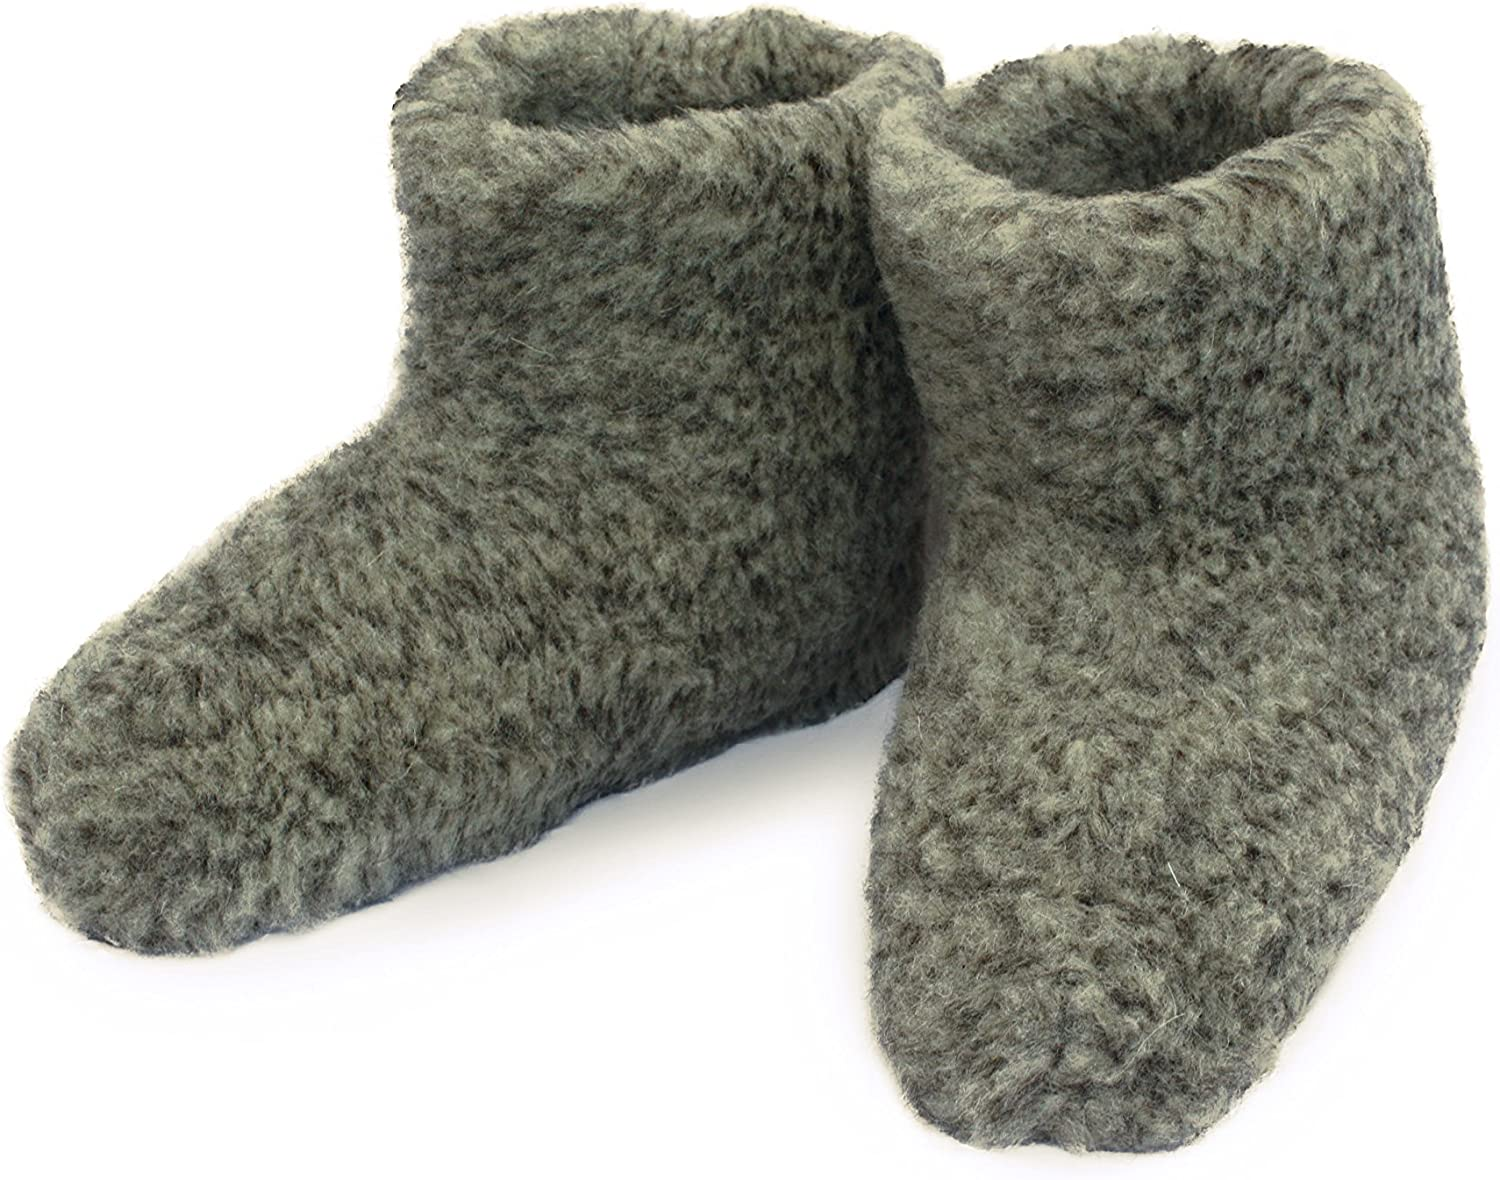 WOMEN/'S MERINO WOOL BOOTS WARM COZY SLIPPERS MOCCASINS CHUNI Size 4 GREY